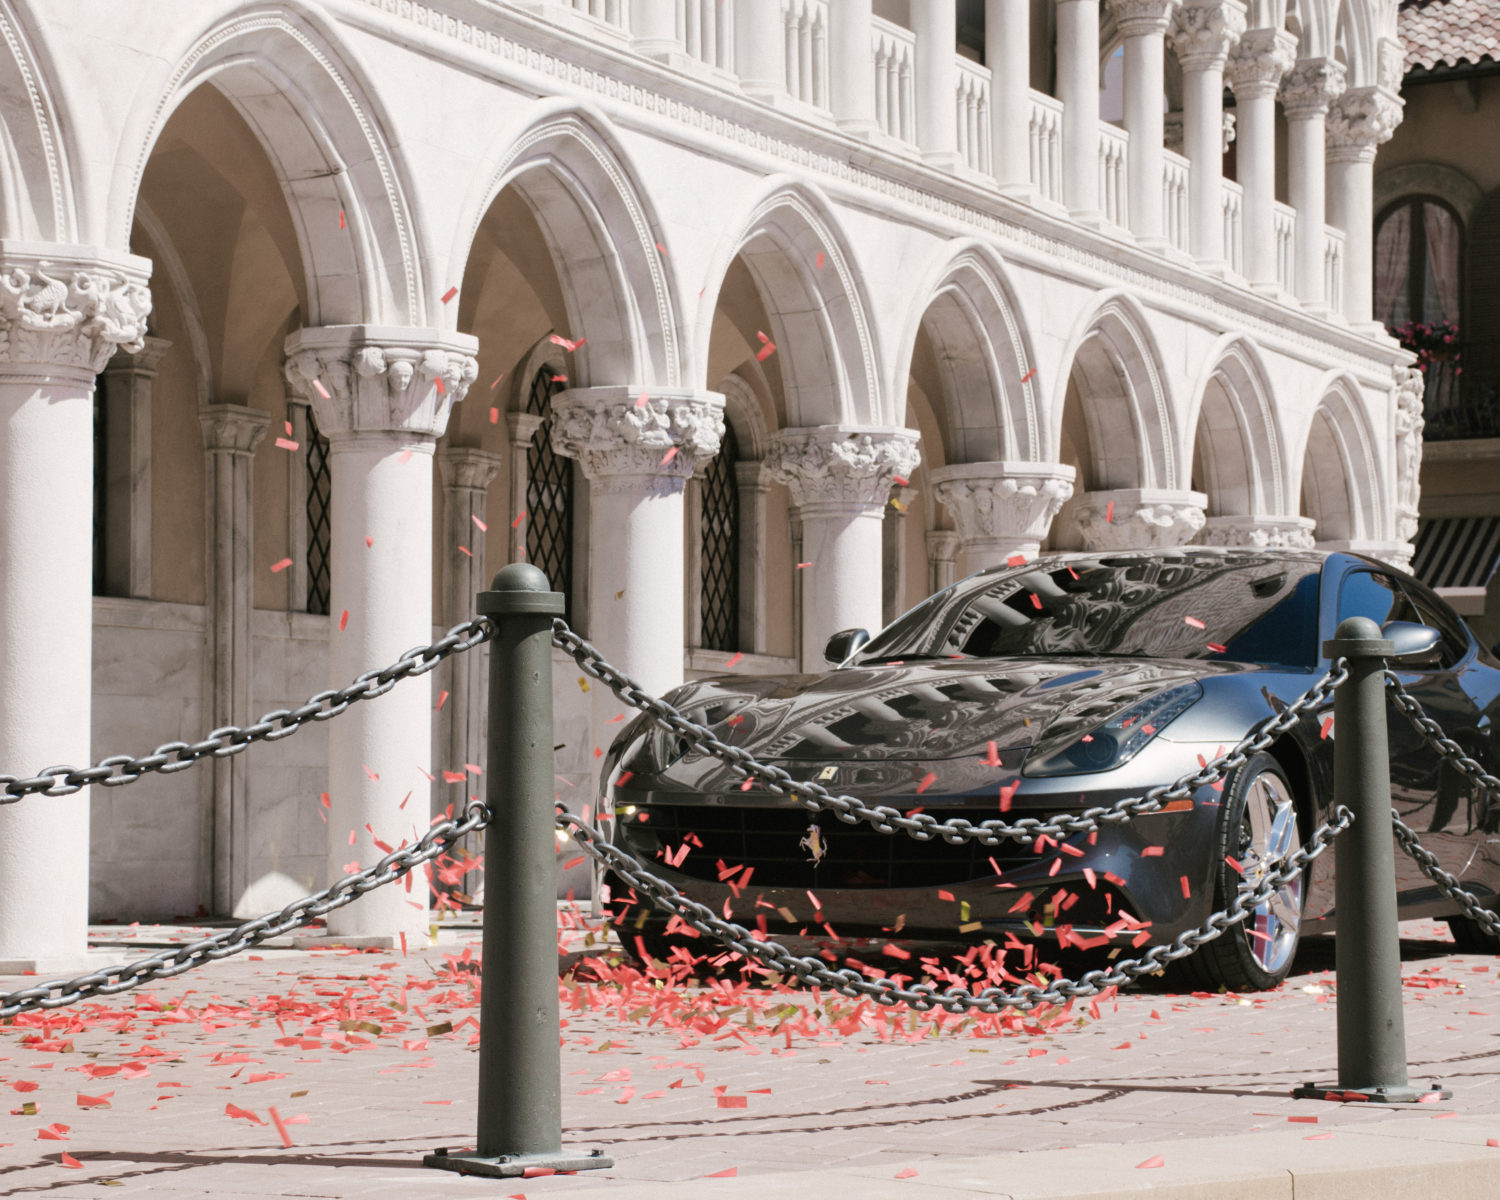 Red ticker tape blows down the recreated streets of Rome.